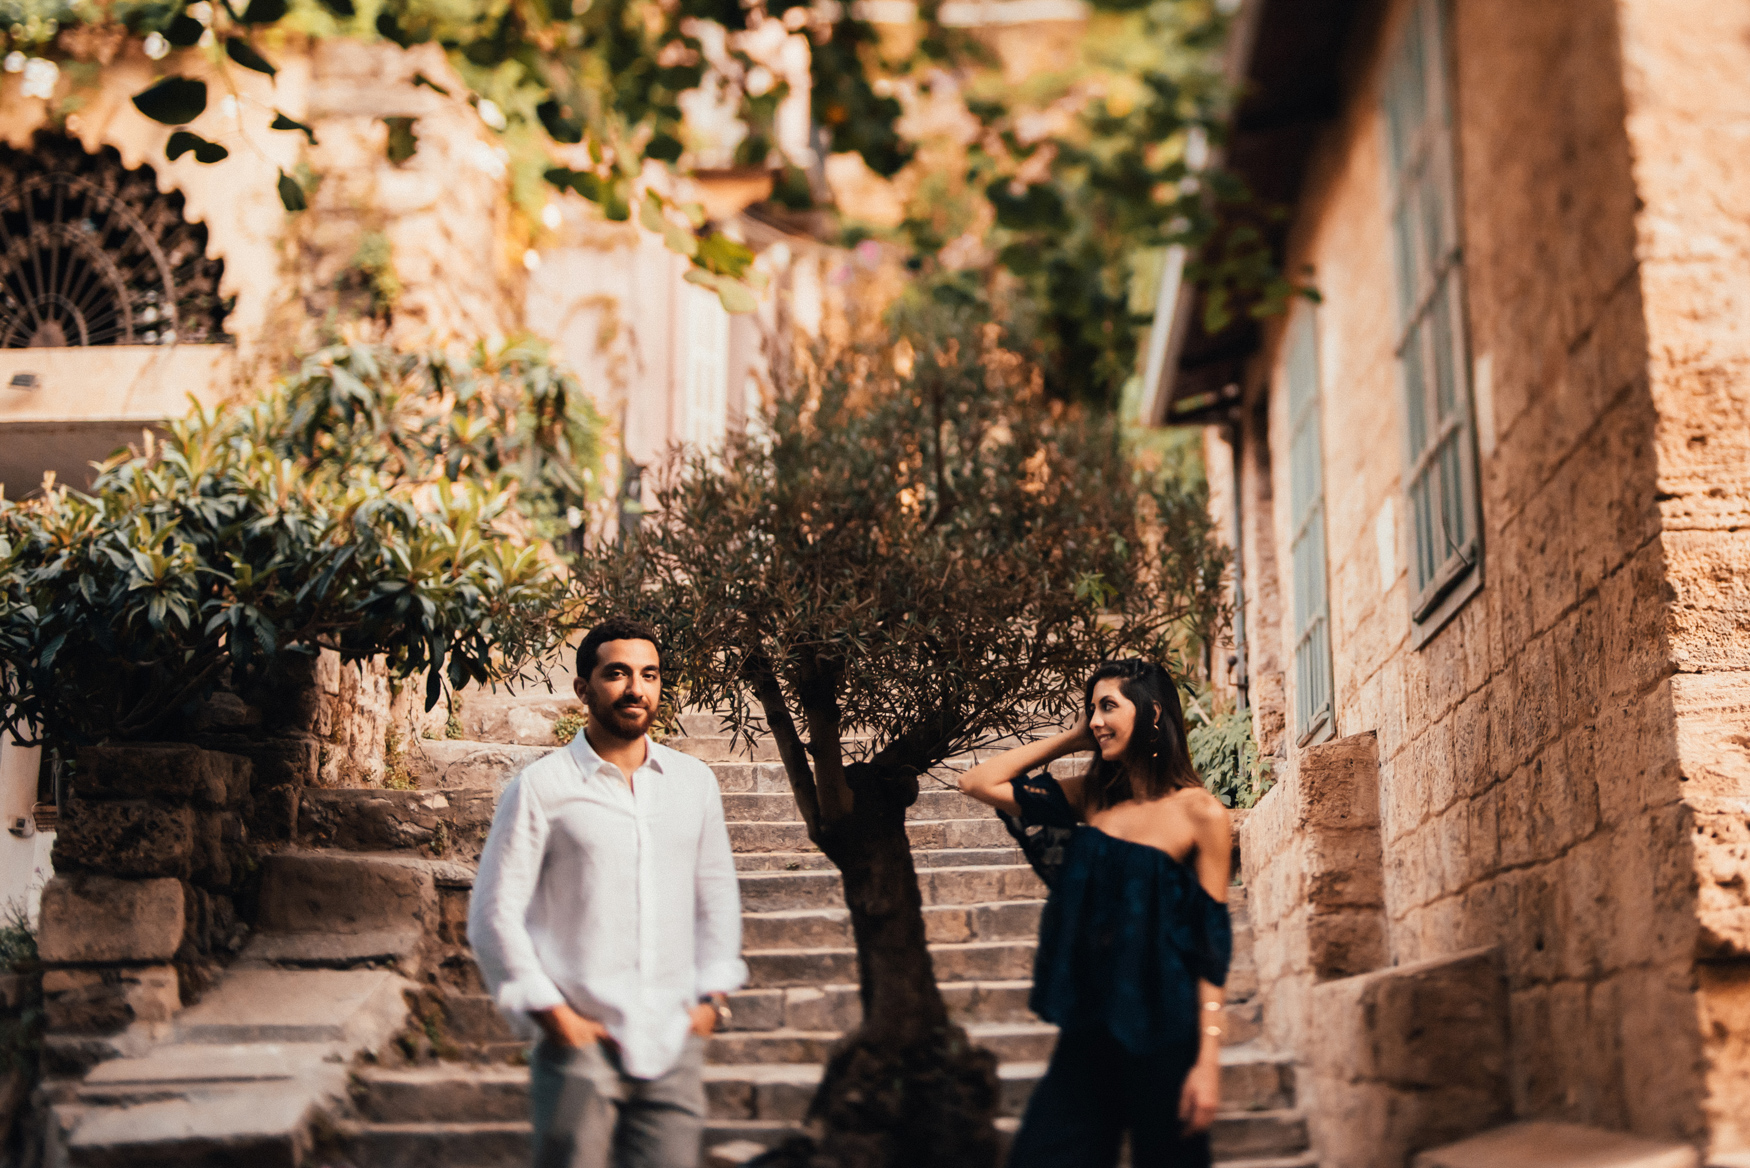 bestof2017_063 beirut engagement session.jpg